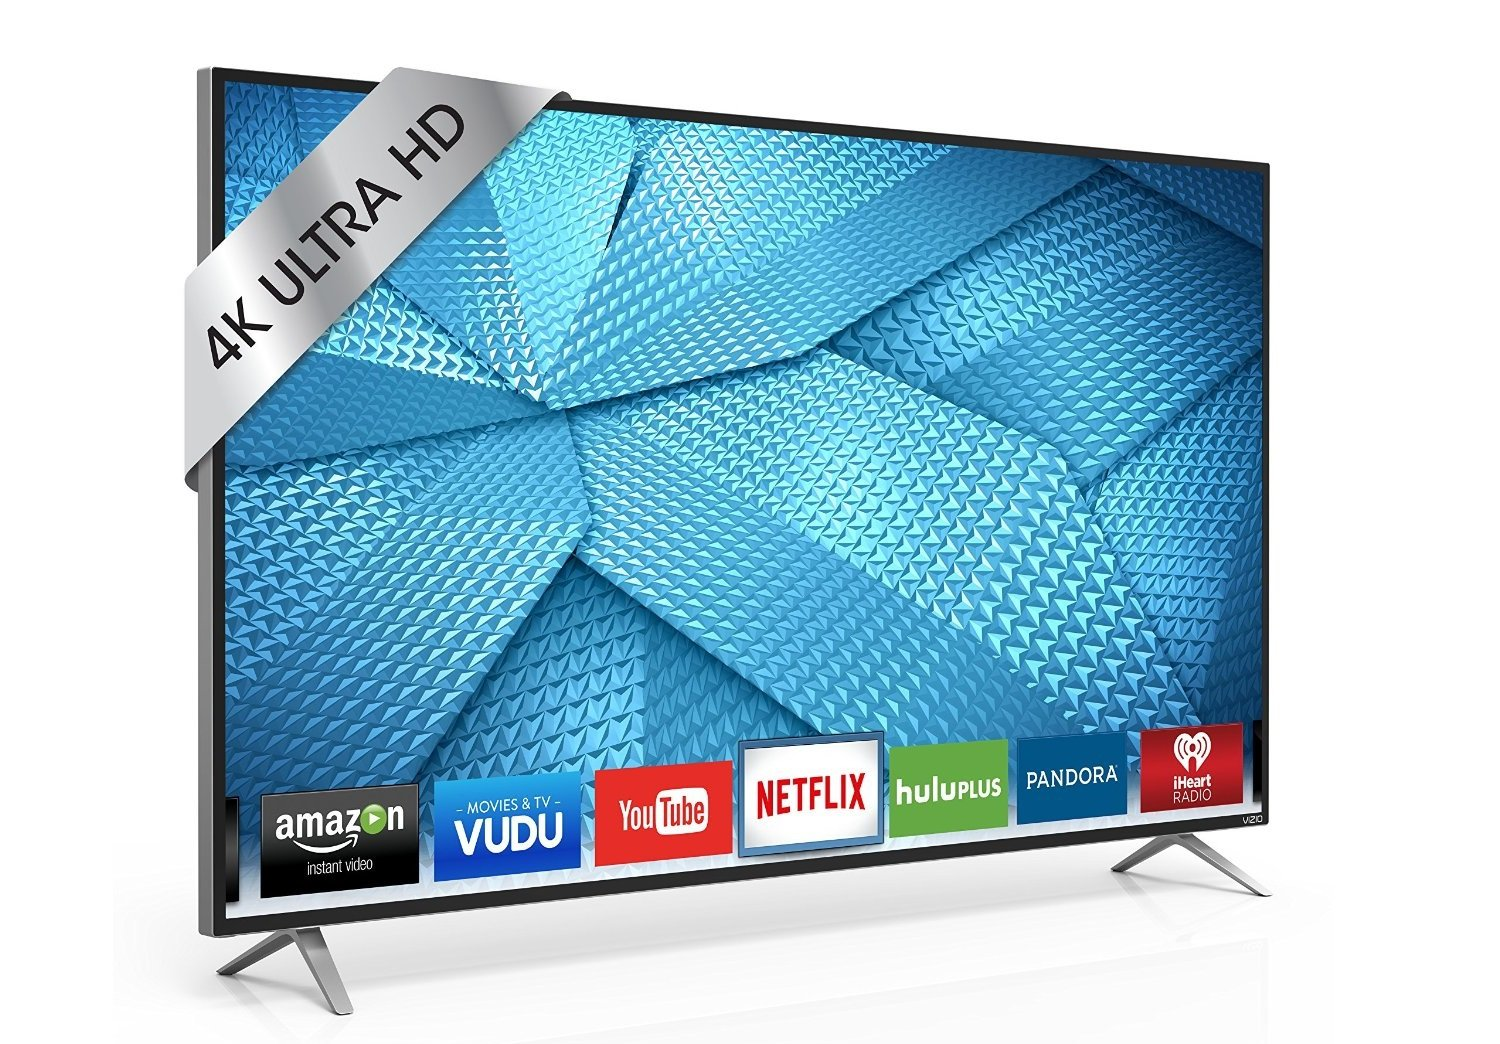 Picture of smart tv from Vizio